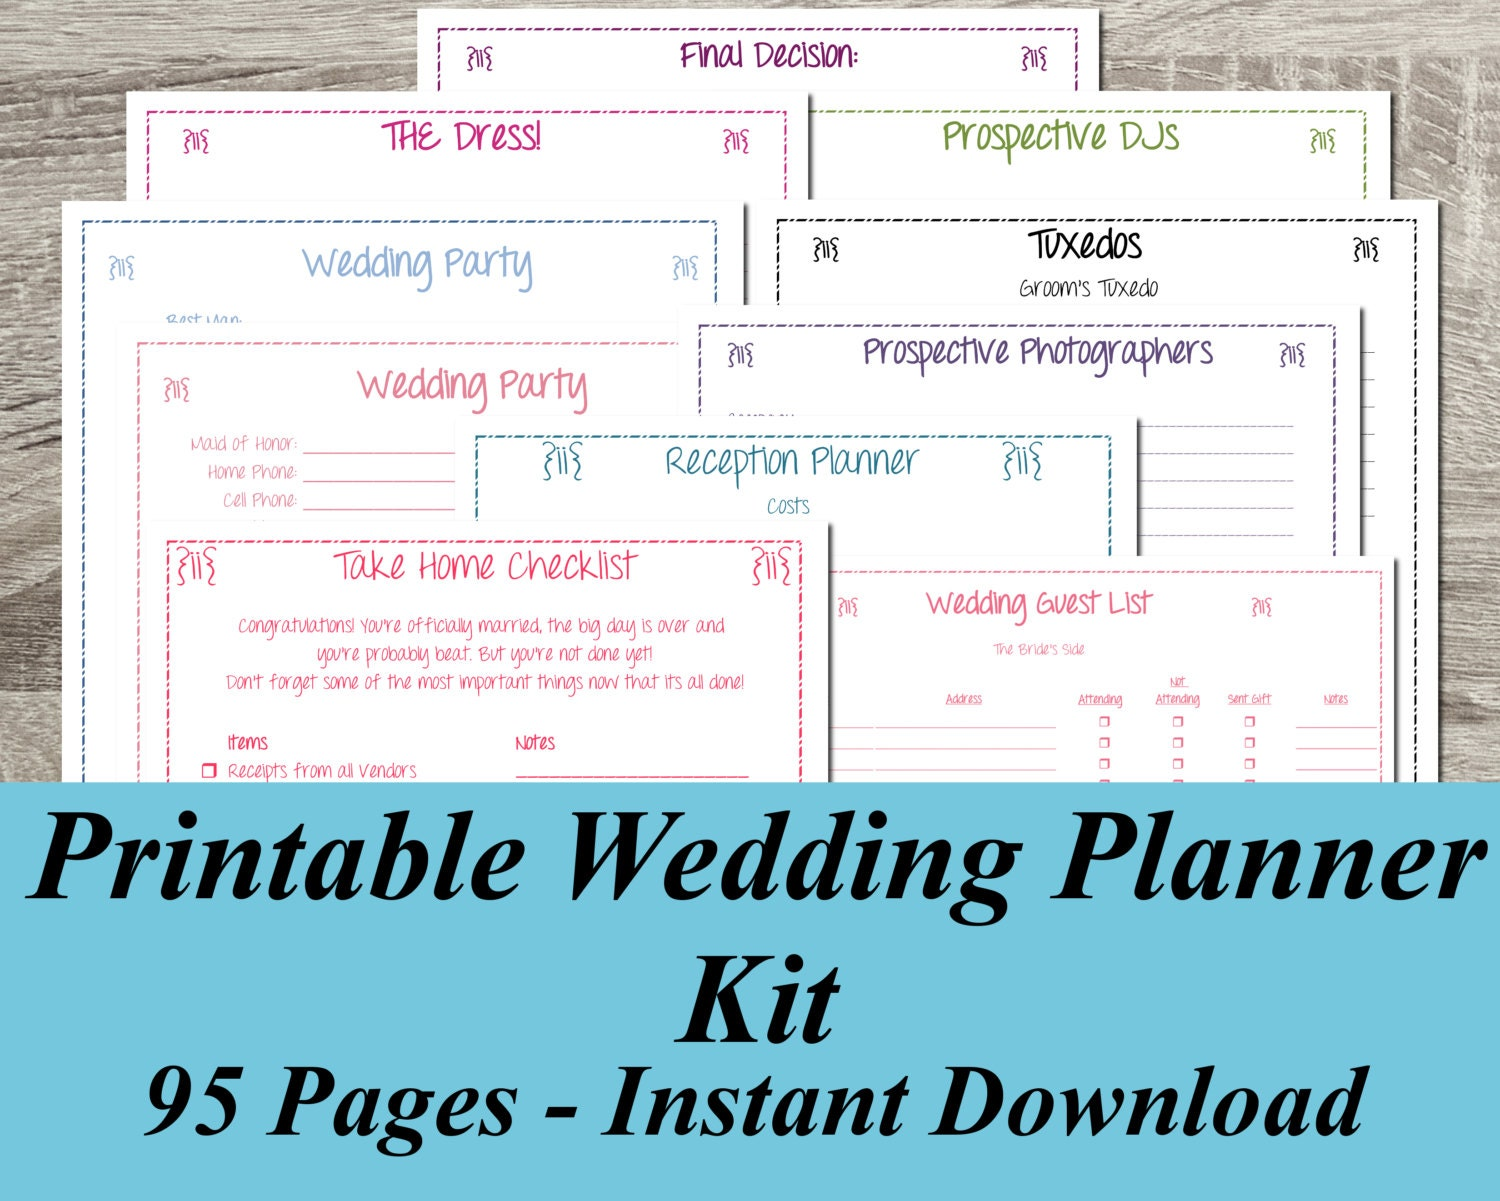 INSTANT DOWNLOAD Ultimate Printable Wedding Planner Kit - 95 pages ...